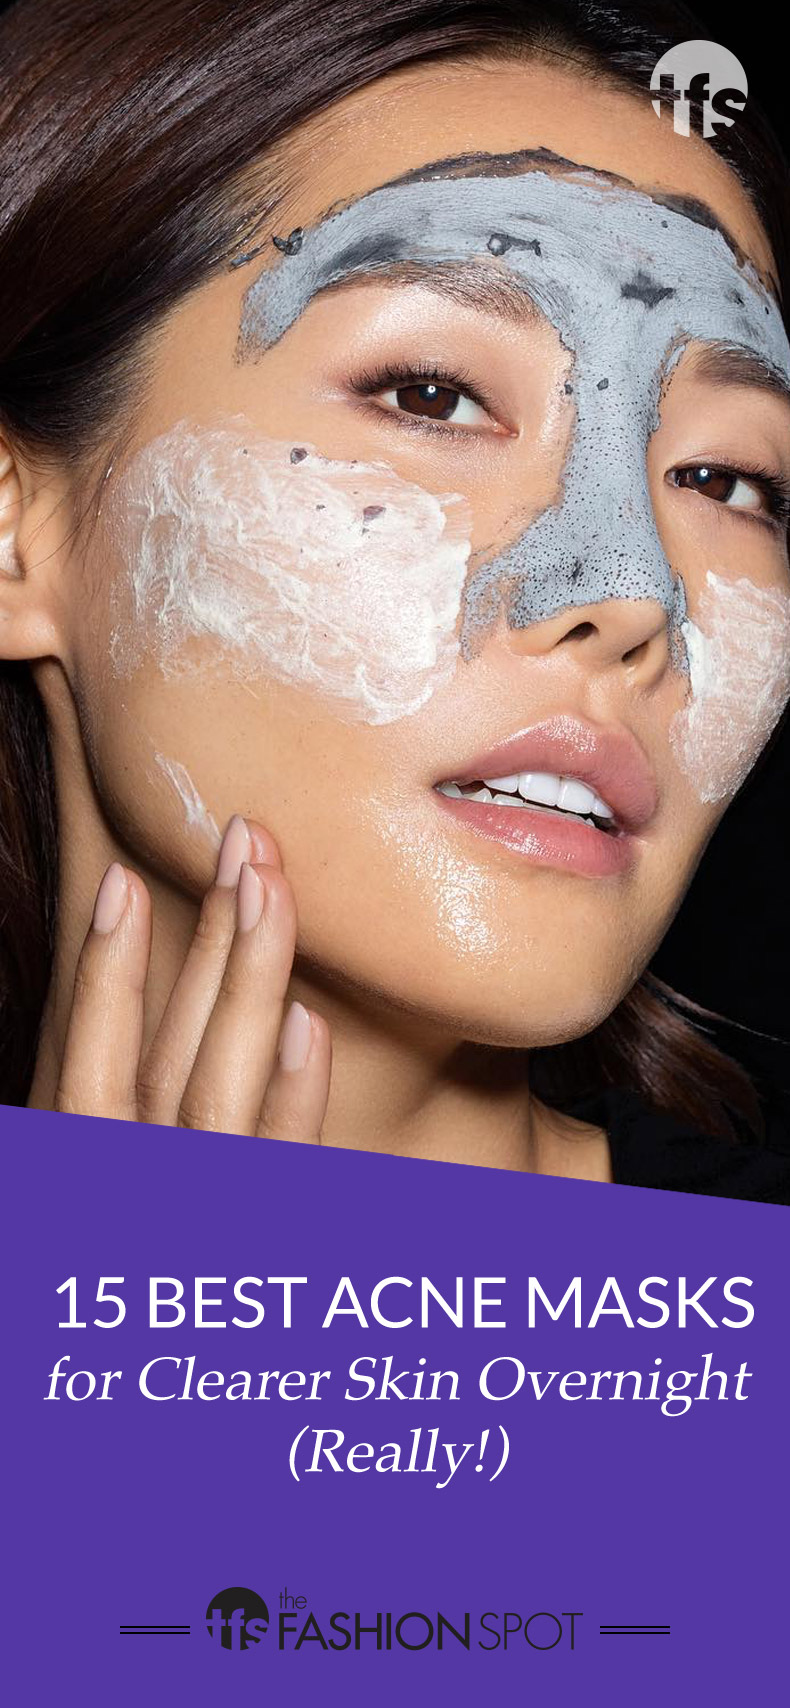 15 Best Acne Masks for Clearer Skin Overnight (Really!)